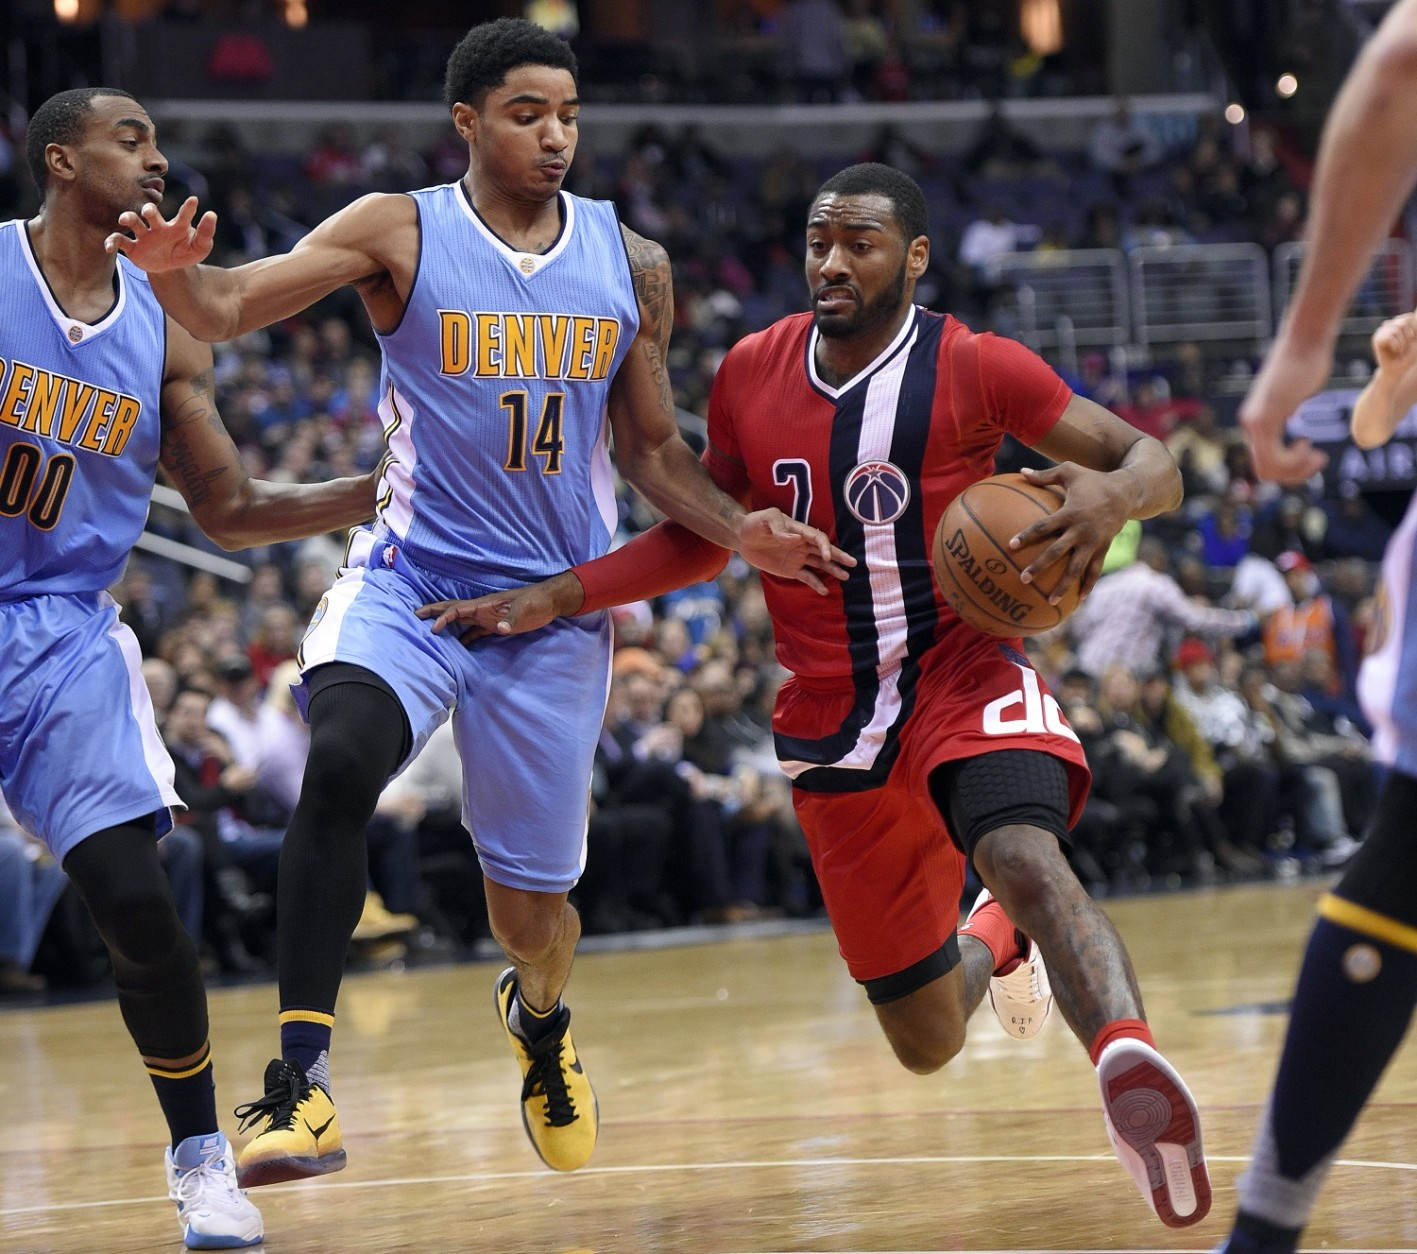 Washington Wizards guard John Wall (2) drives to the basket against Denver Nuggets guard Gary Harris (14) and forward Darrell Arthur (00) during the second half of an NBA basketball game, Thursday, Jan. 28, 2016, in Washington. The Nuggets won 117-113. (AP Photo/Nick Wass)